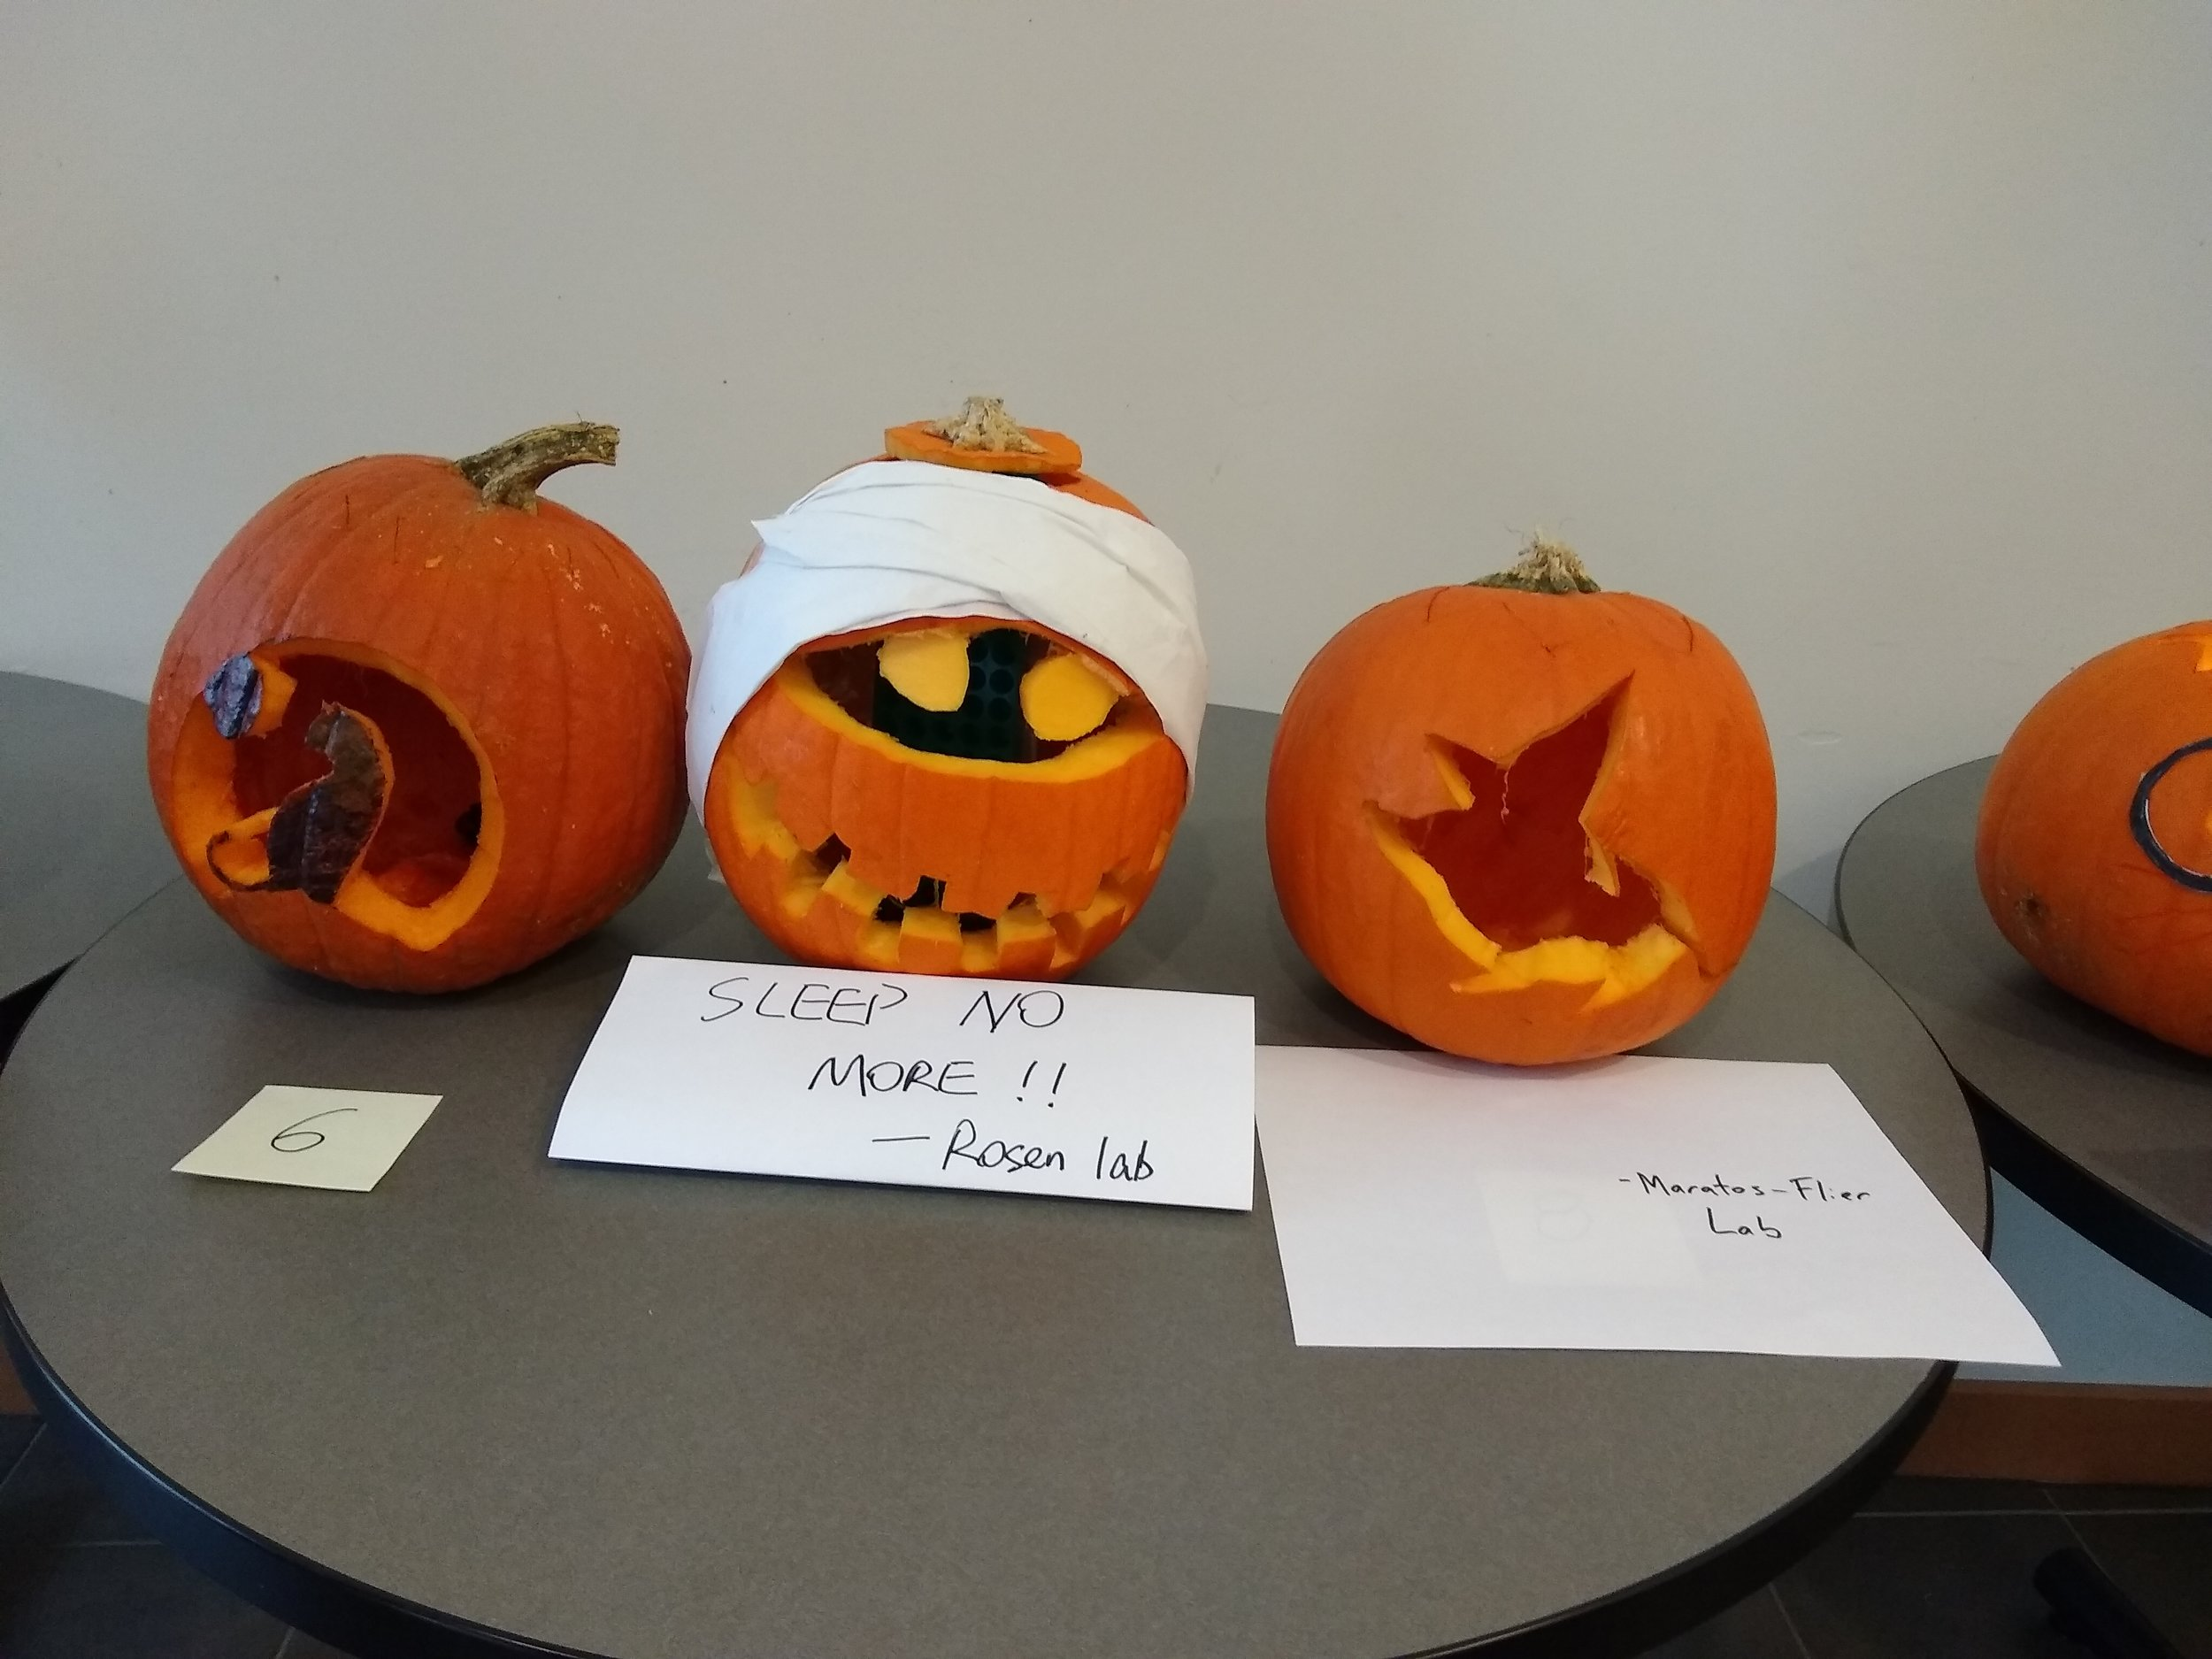 Maratos-Flier lab pumpkin Rorschach test: what do you see? Mouse in a witches hat? Hummingbird dropping a deuce?